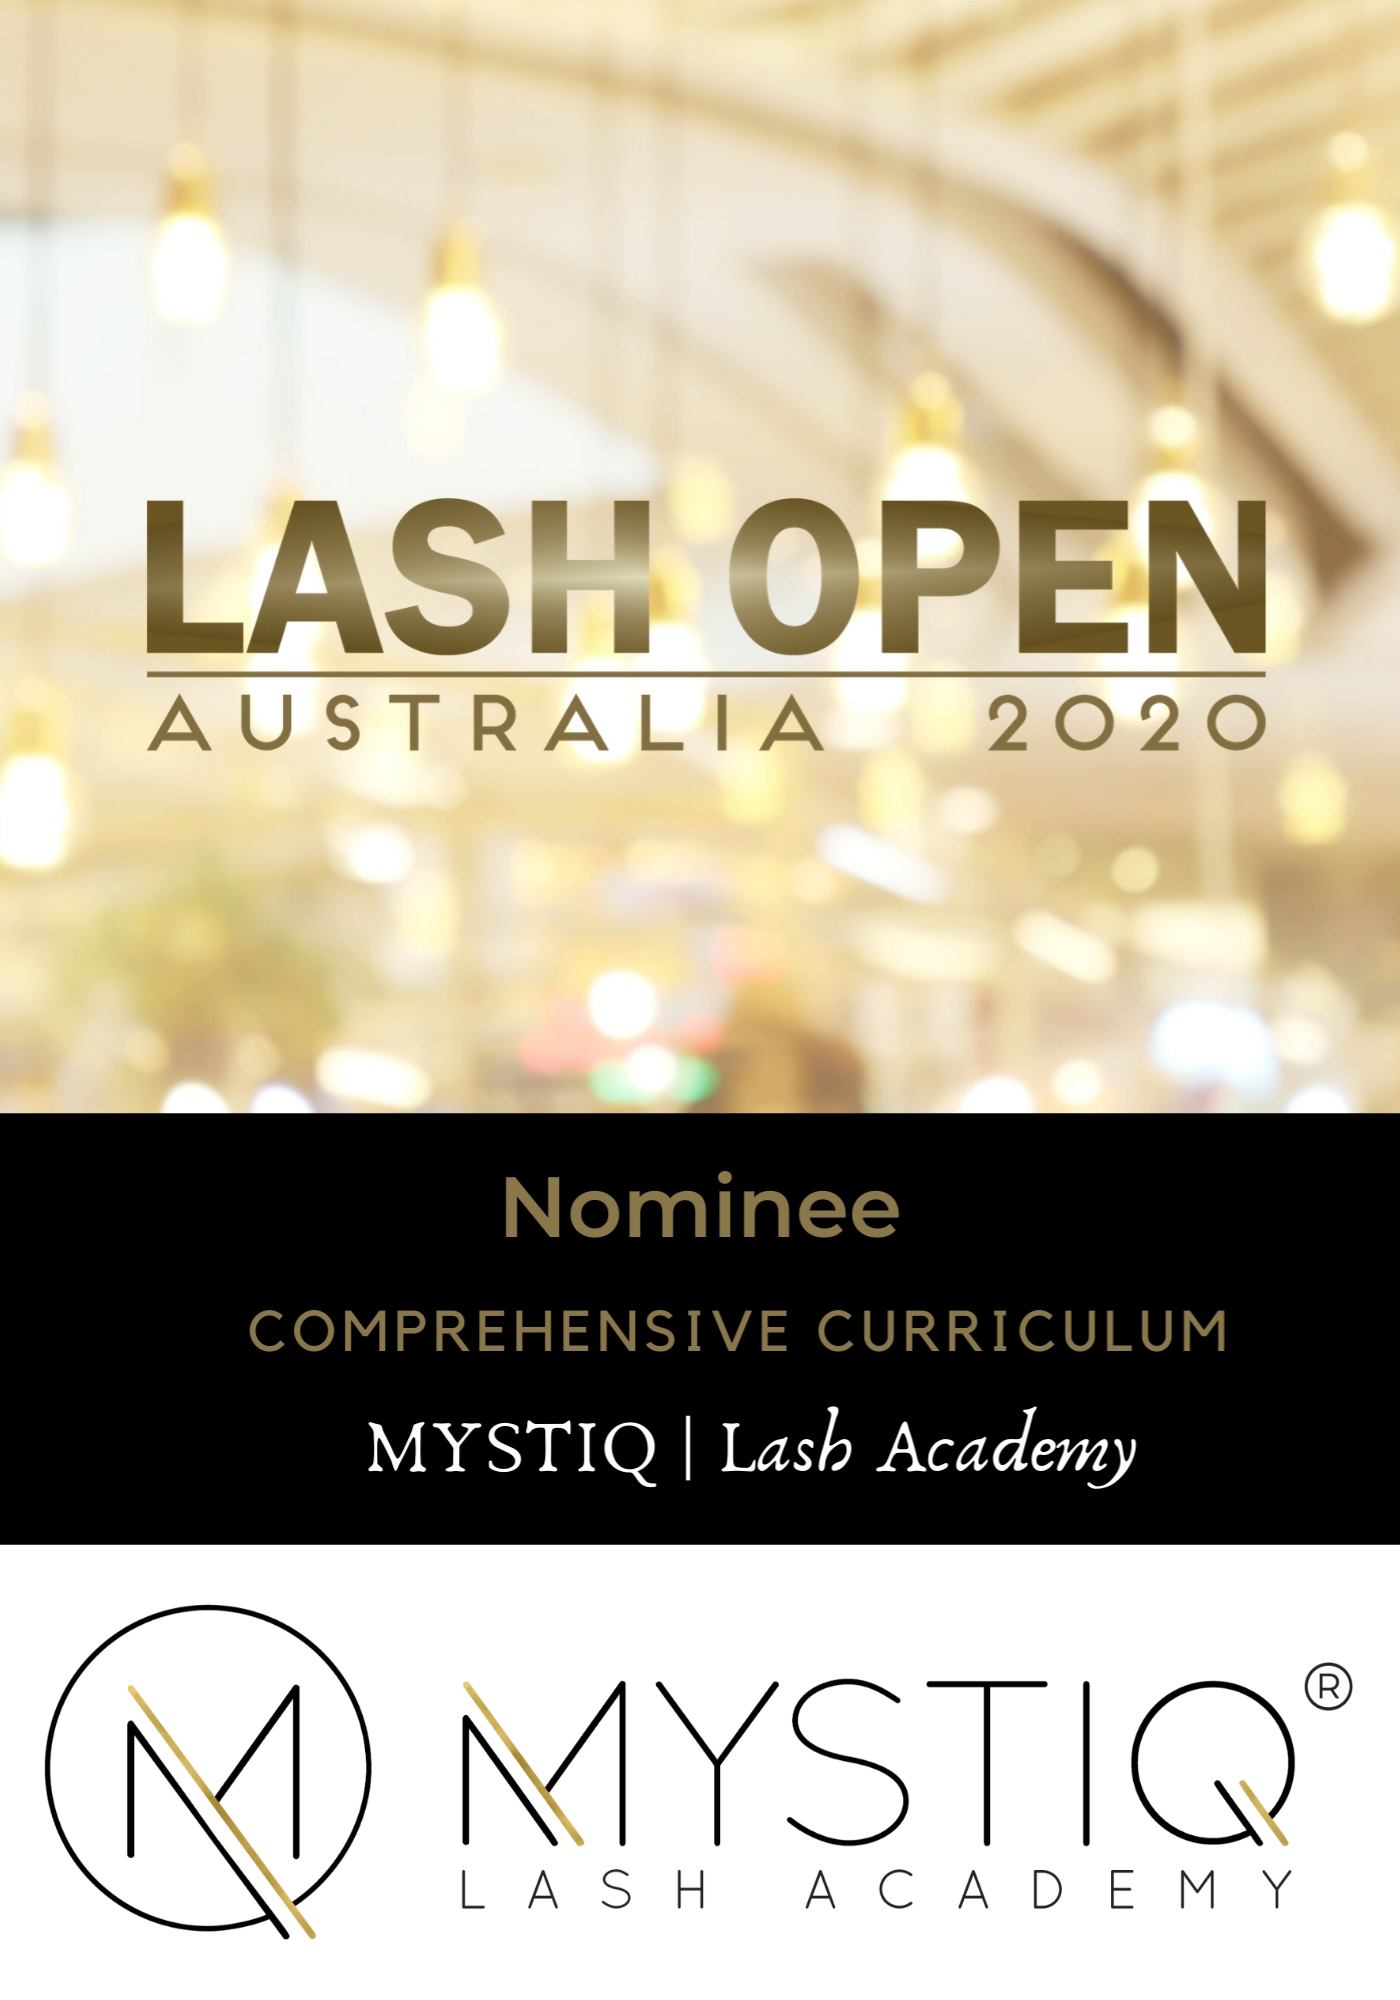 Lash Open 2020 Award Nomination - Comprehensive Curriculum